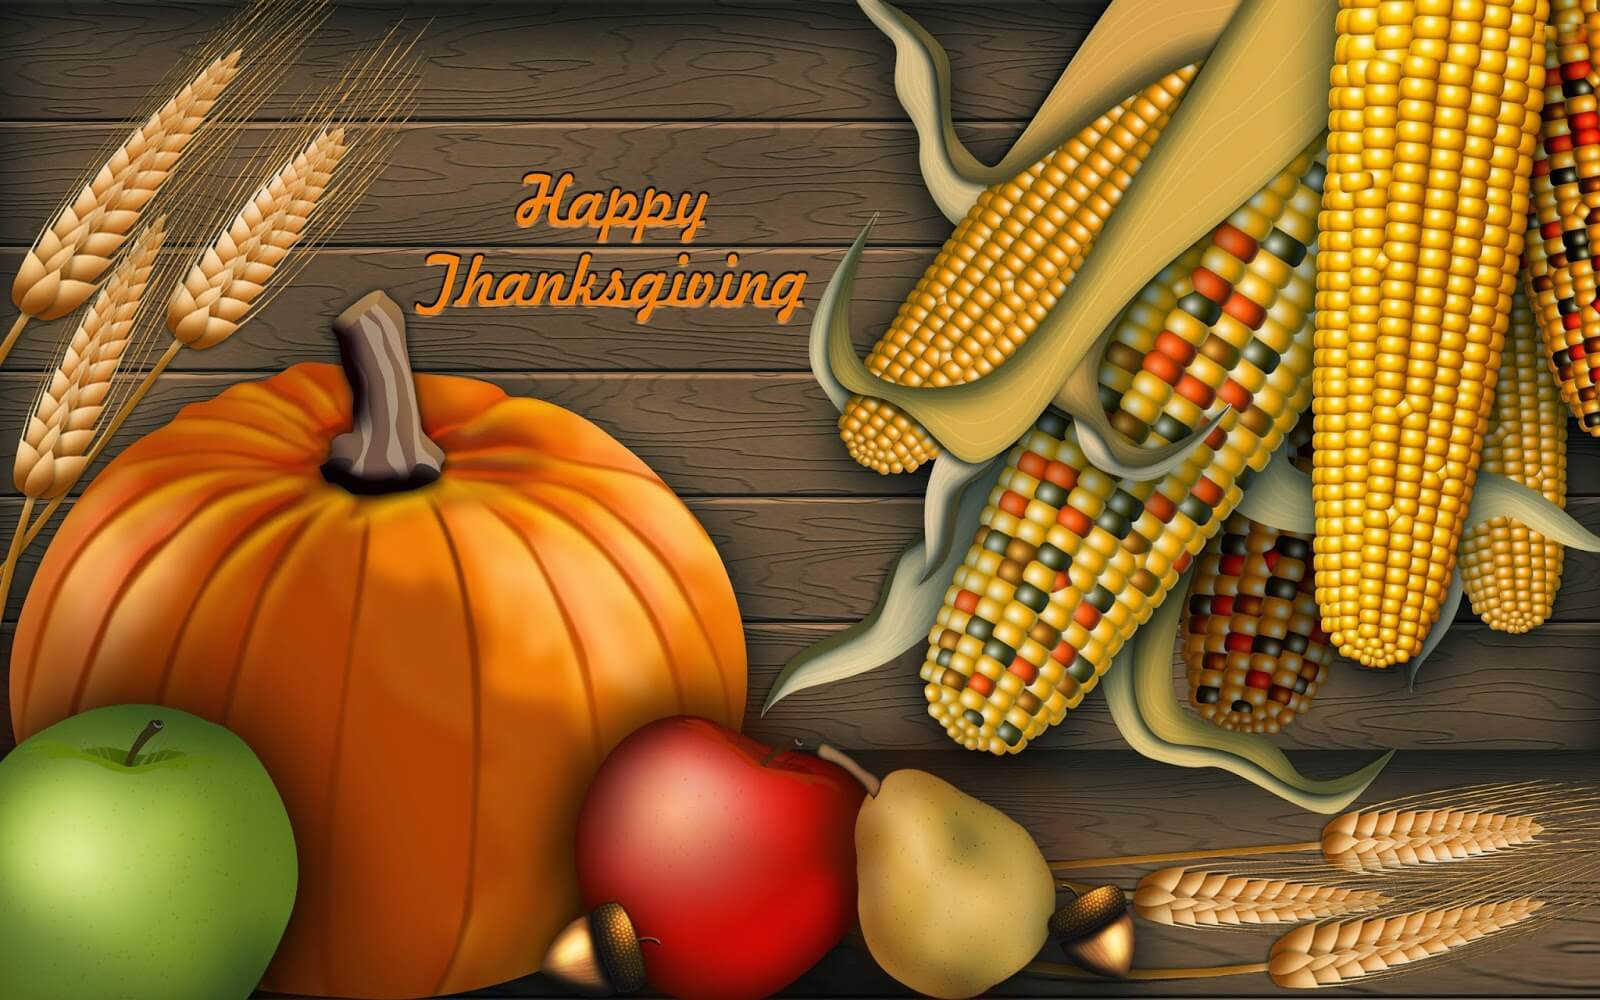 happy thanksgiving day wishes pumpkin corns latest hd wallpaper